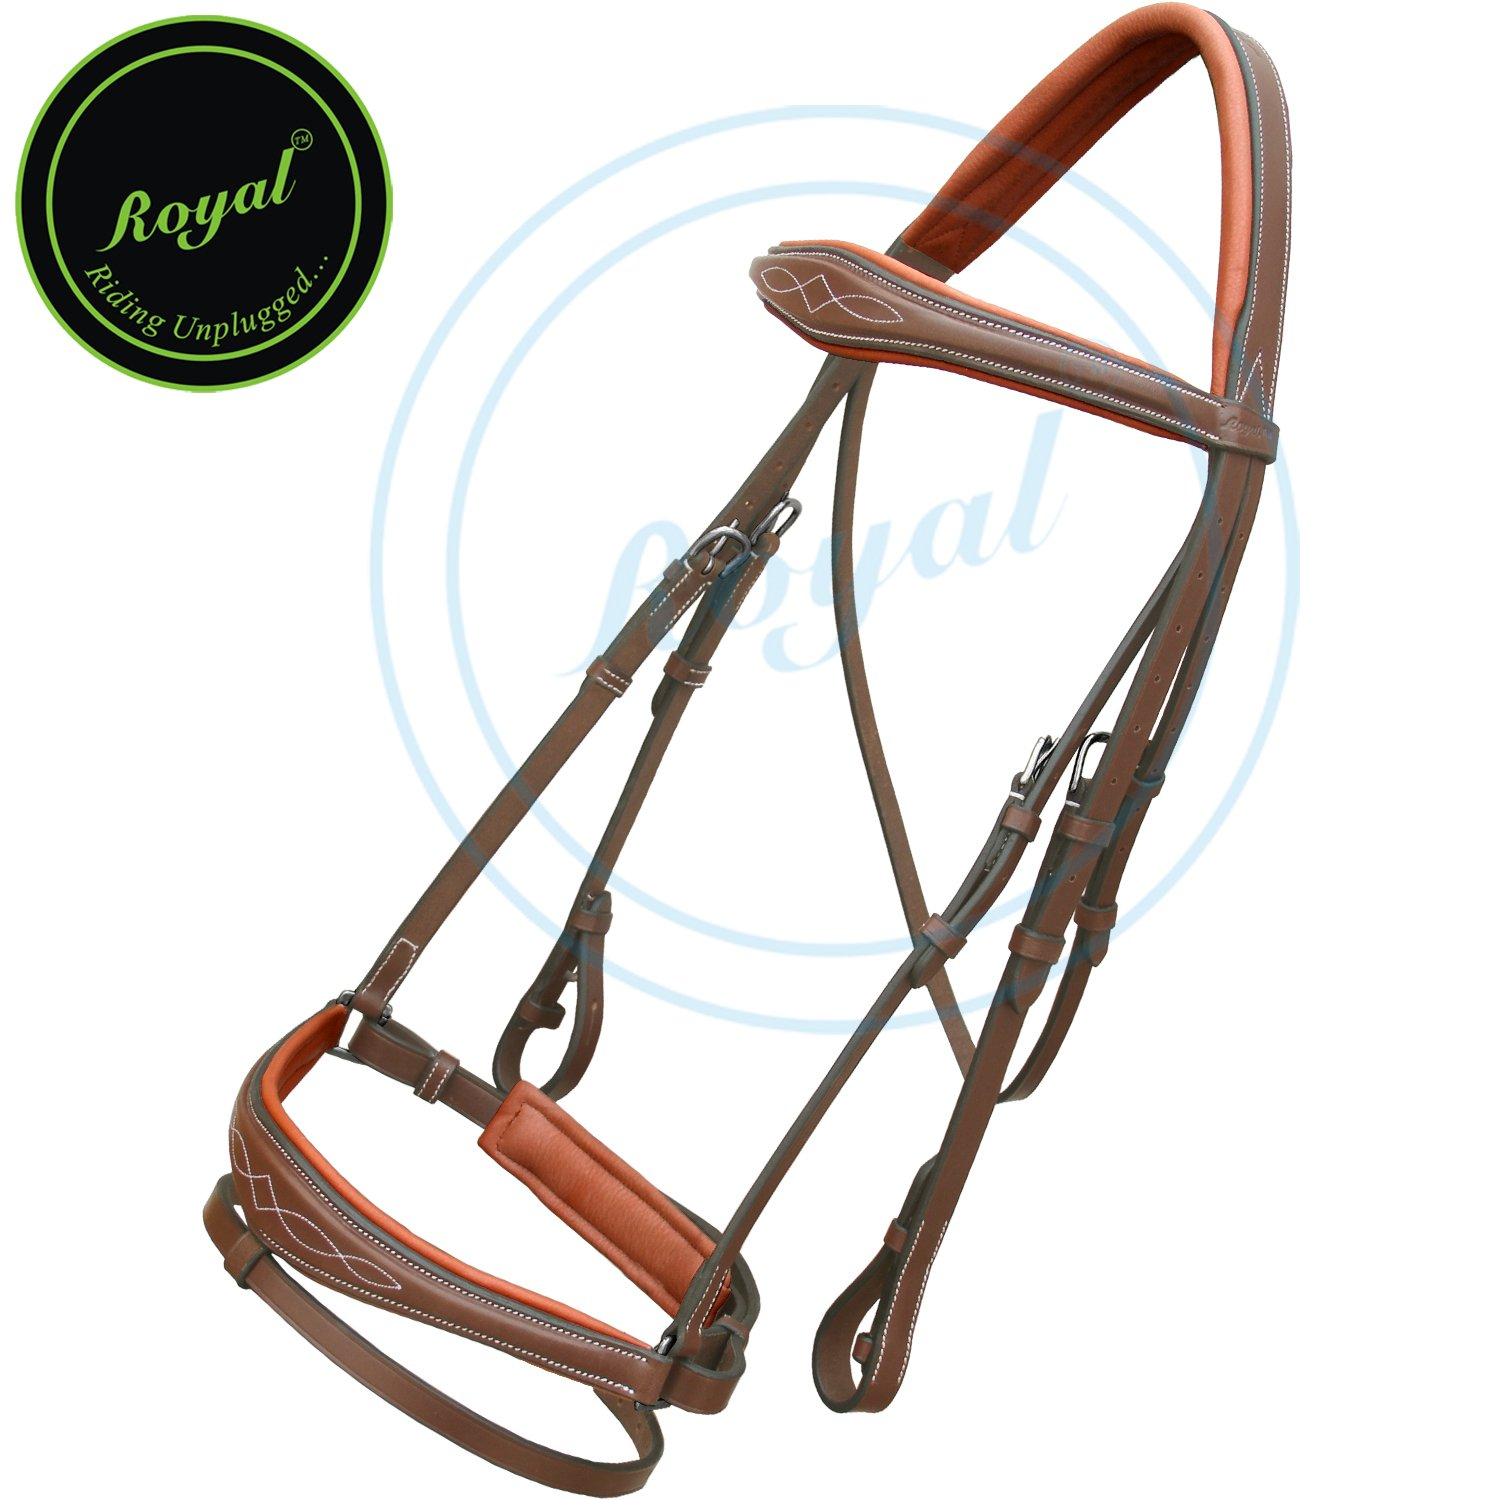 Royal Fancy Anatomic Leather Bridle with PP Rubber Grip Reins and Stainless Steel Buckles | Equestrian Show Jumping Padded Bridle Set | English Horse Riding Premium Tack ROYAL SPORTS 88